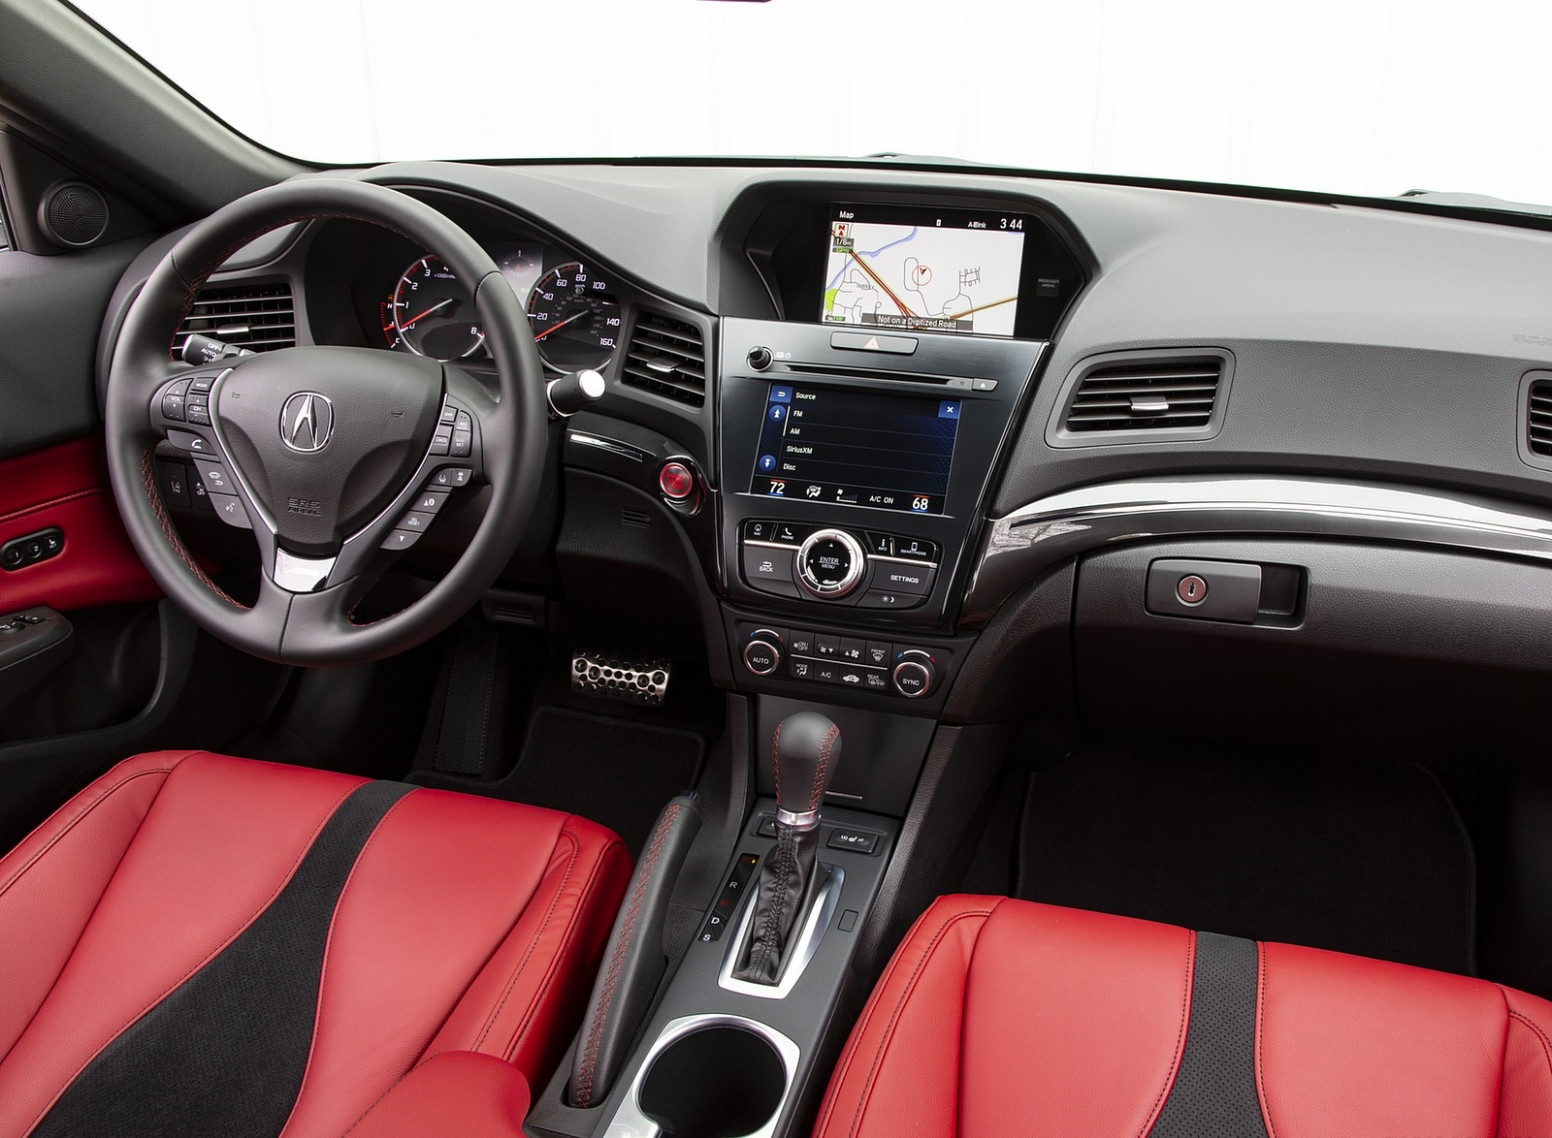 6 Acura ILX A-Spec Interior Wallpapers (6) - NewCarCars